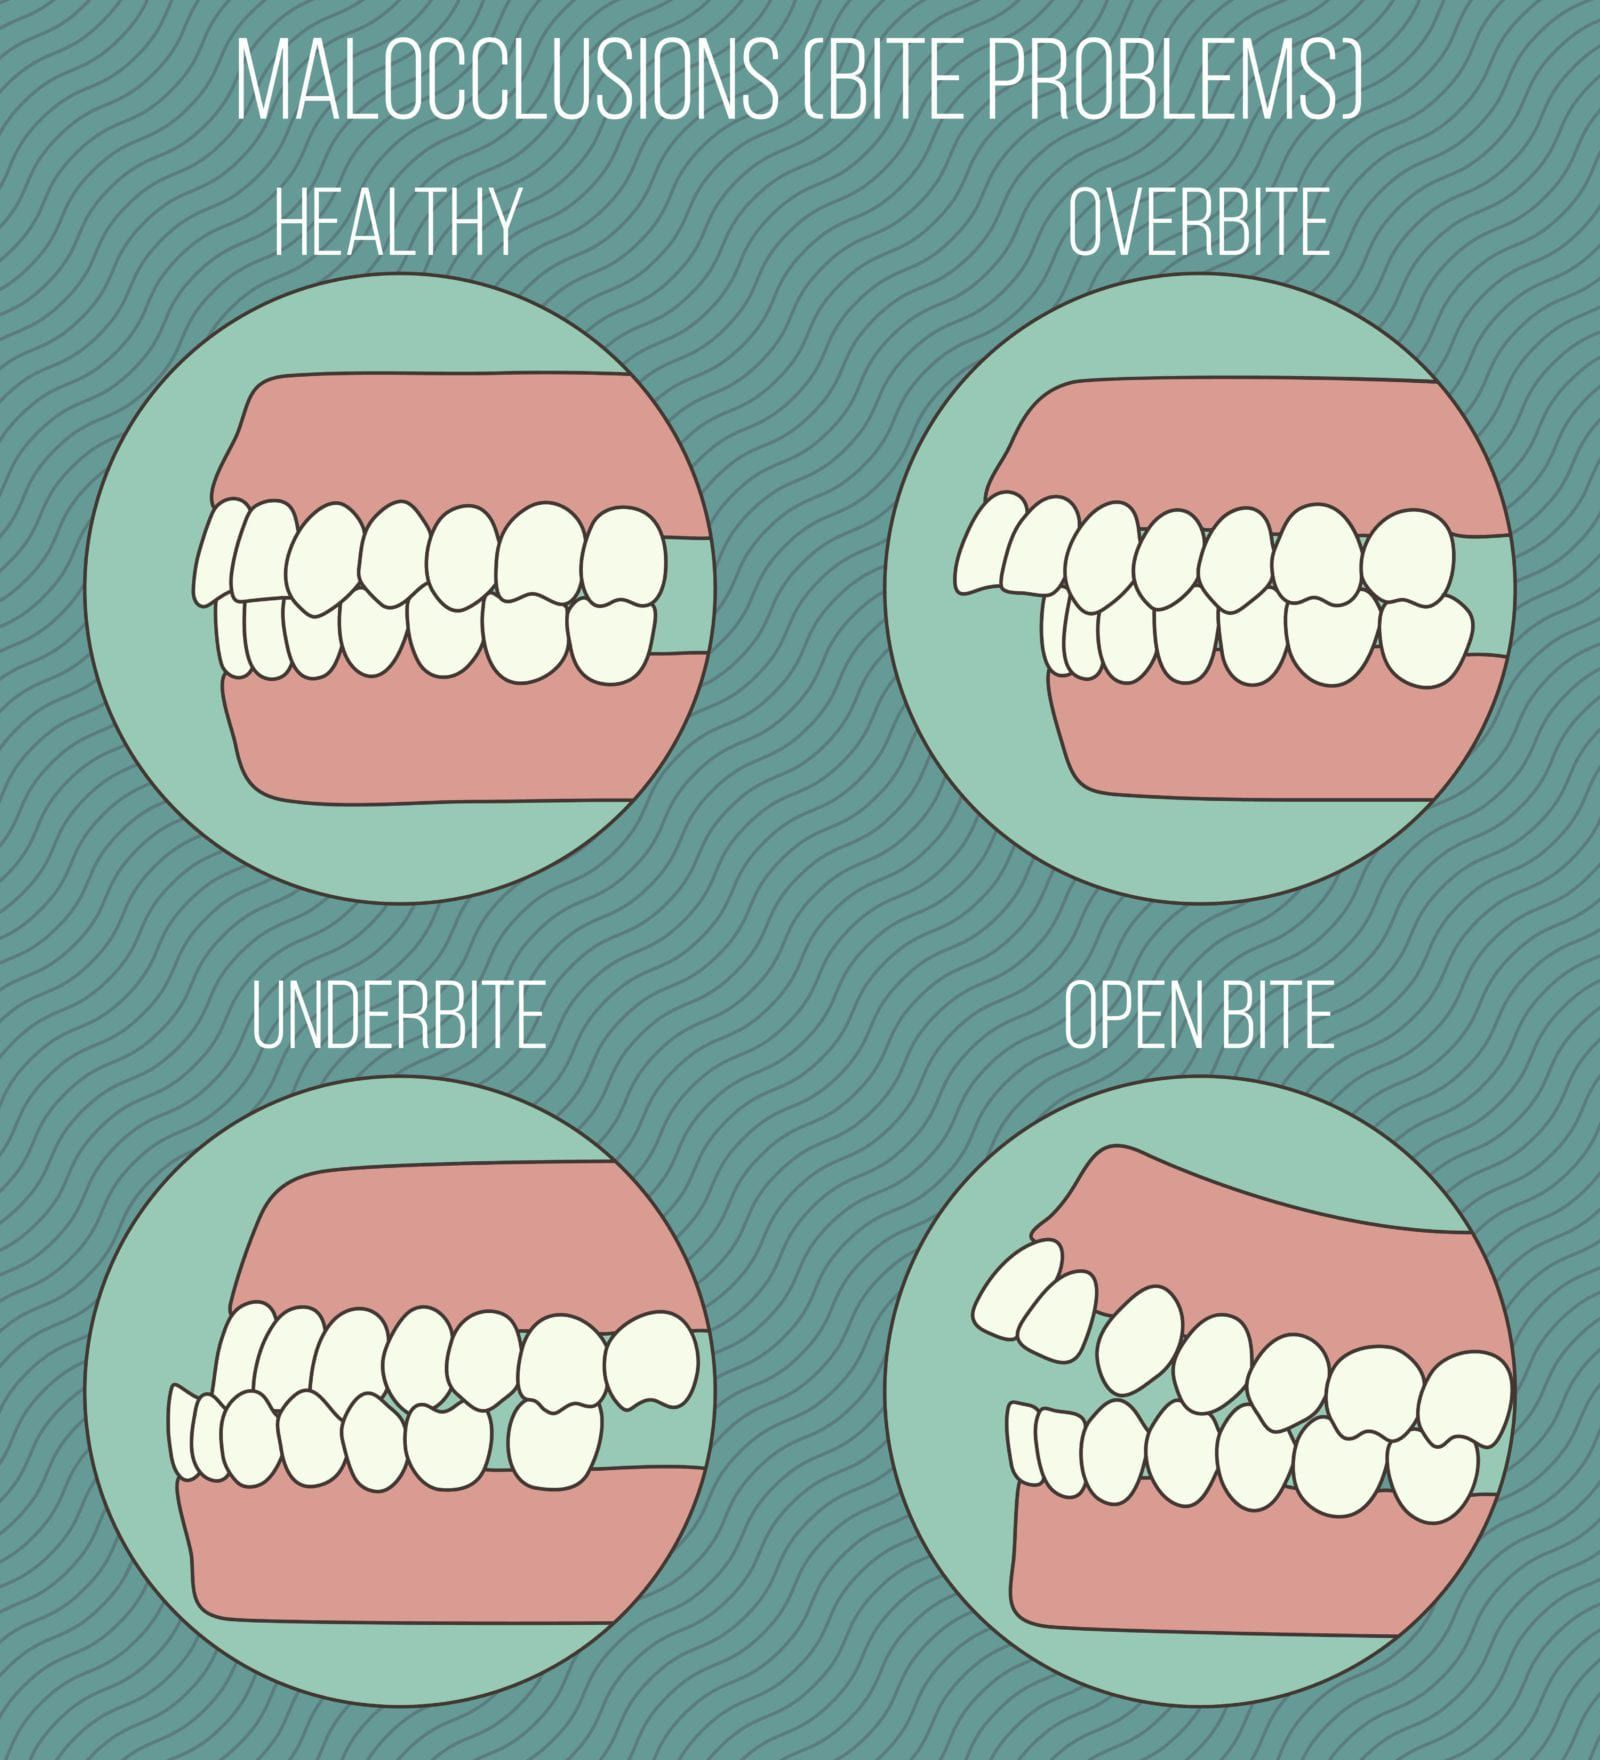 one healthy bite and three cases of malocclusion